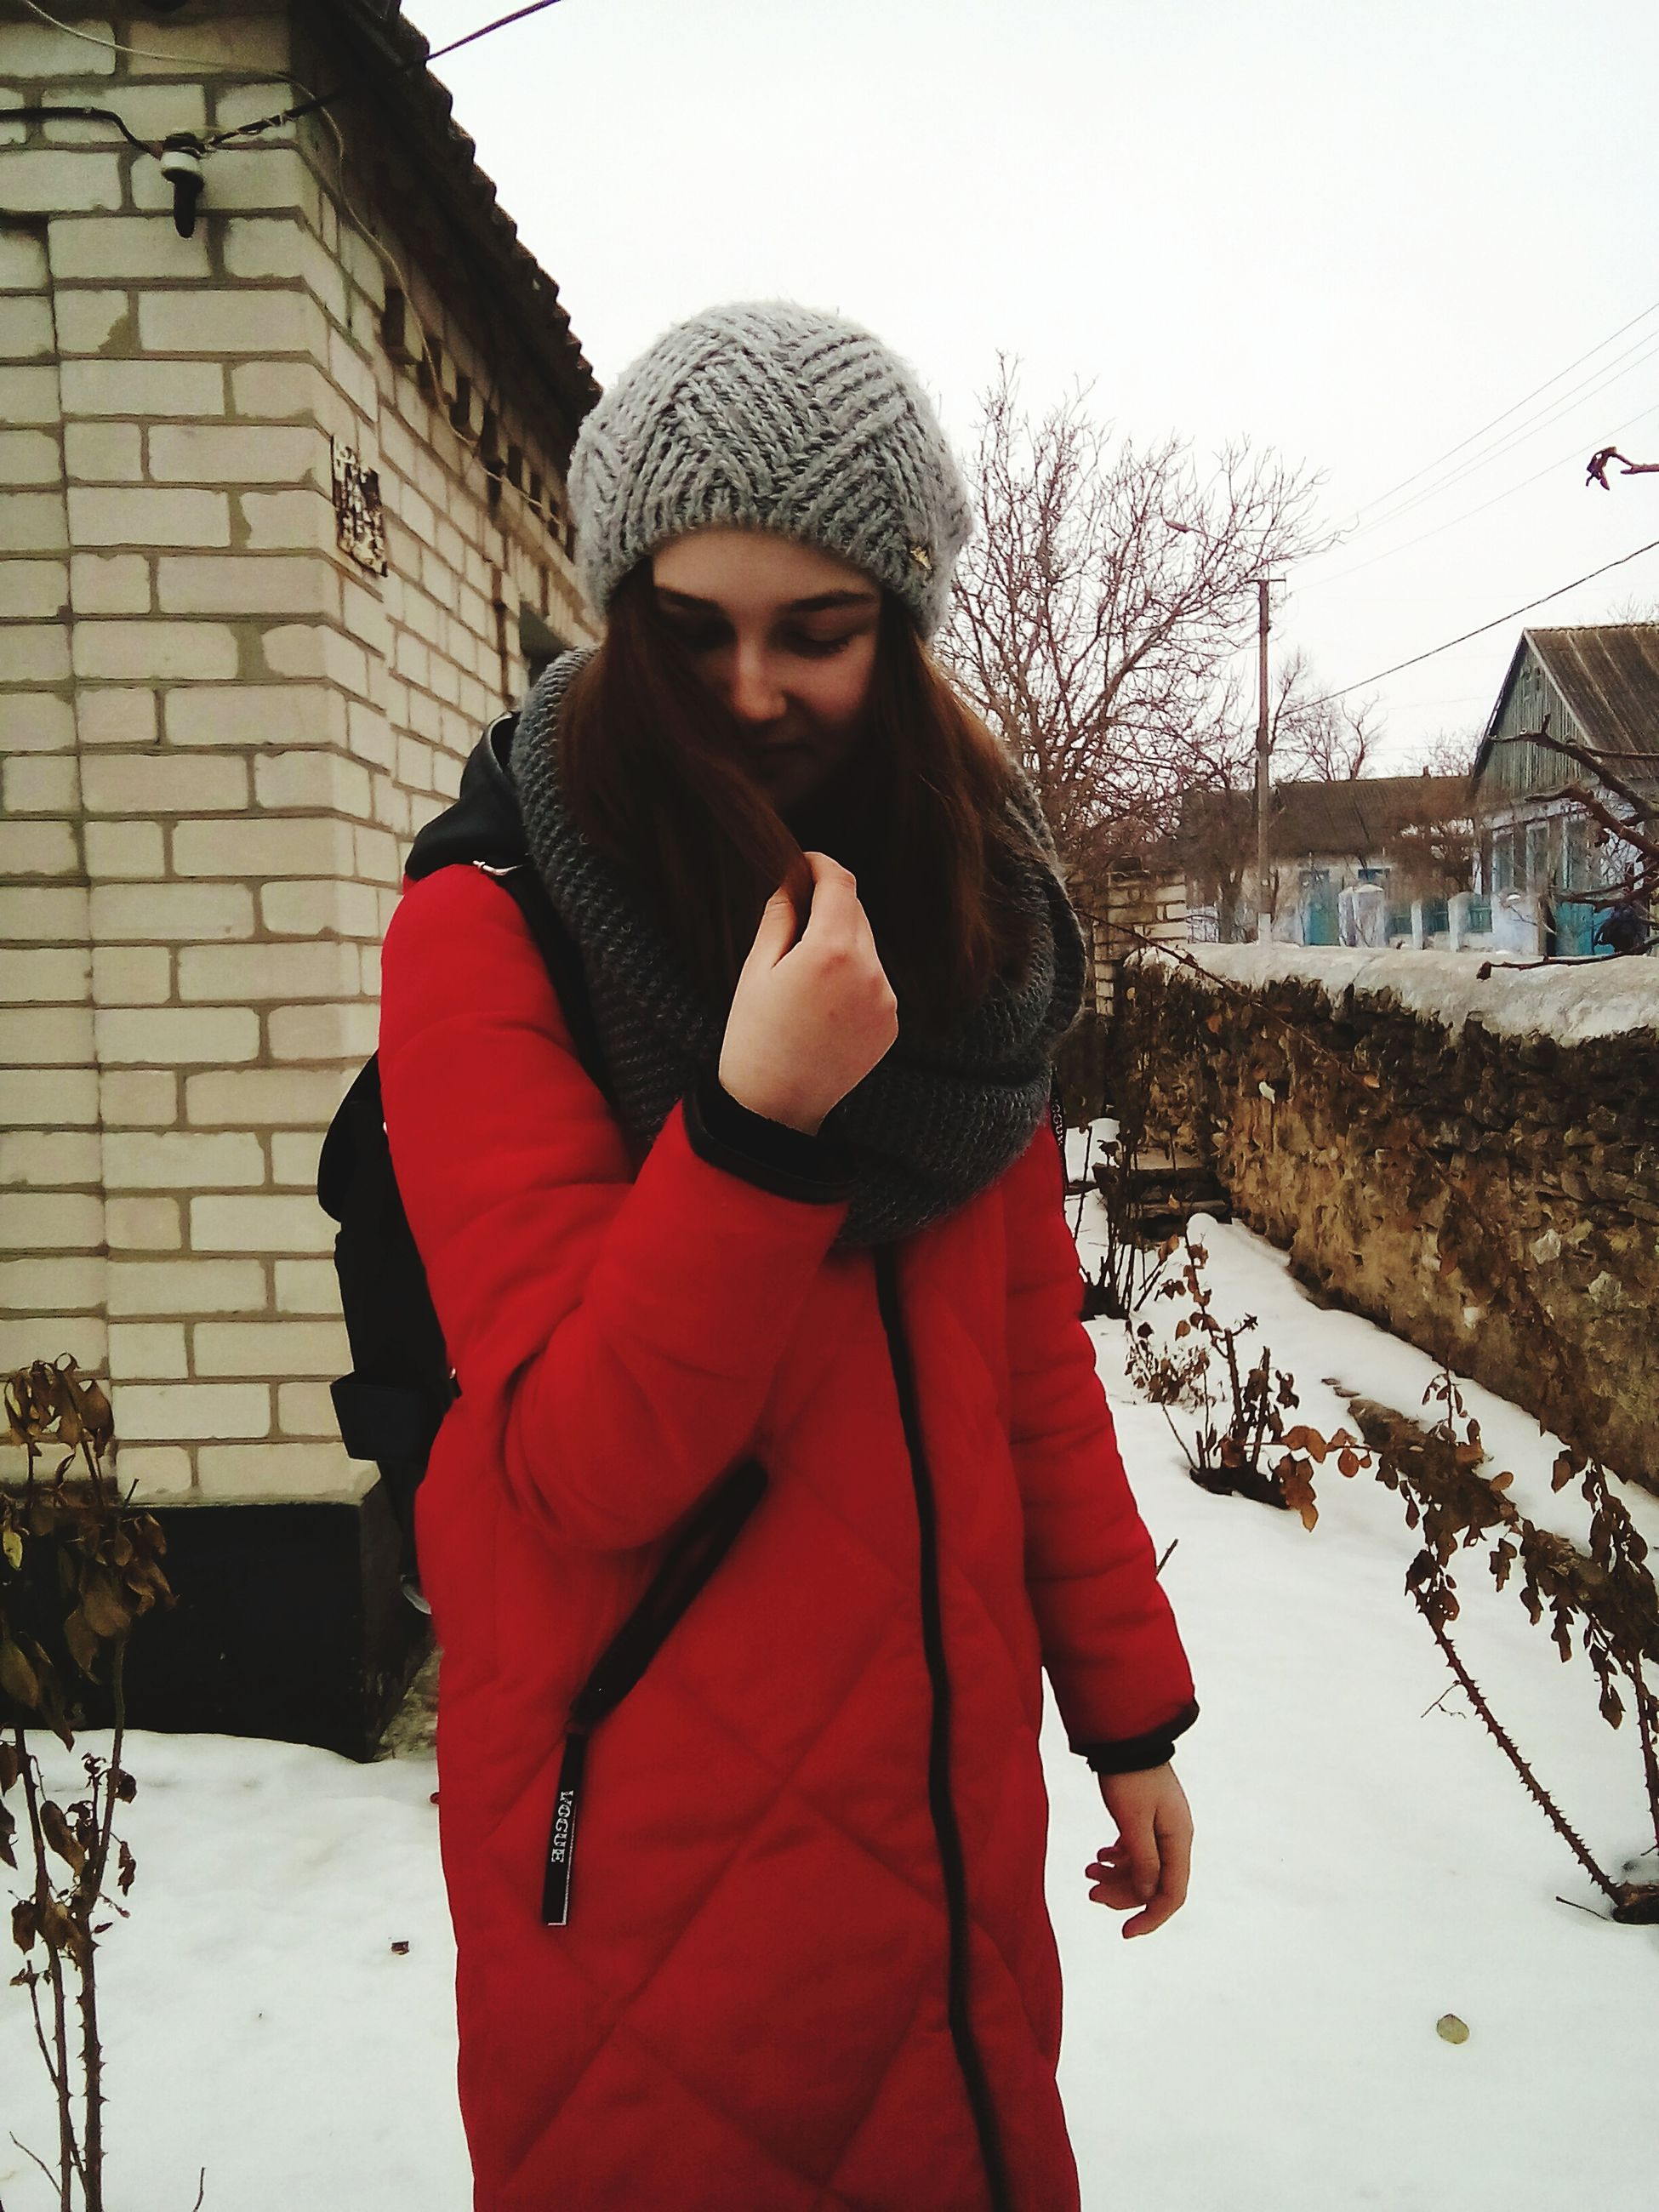 warm clothing, winter, one person, young adult, women, cold temperature, knit hat, outdoors, lifestyles, beautiful people, adult, beautiful woman, beauty, depression - sadness, young women, snow, people, human body part, portrait, nature, day, adults only